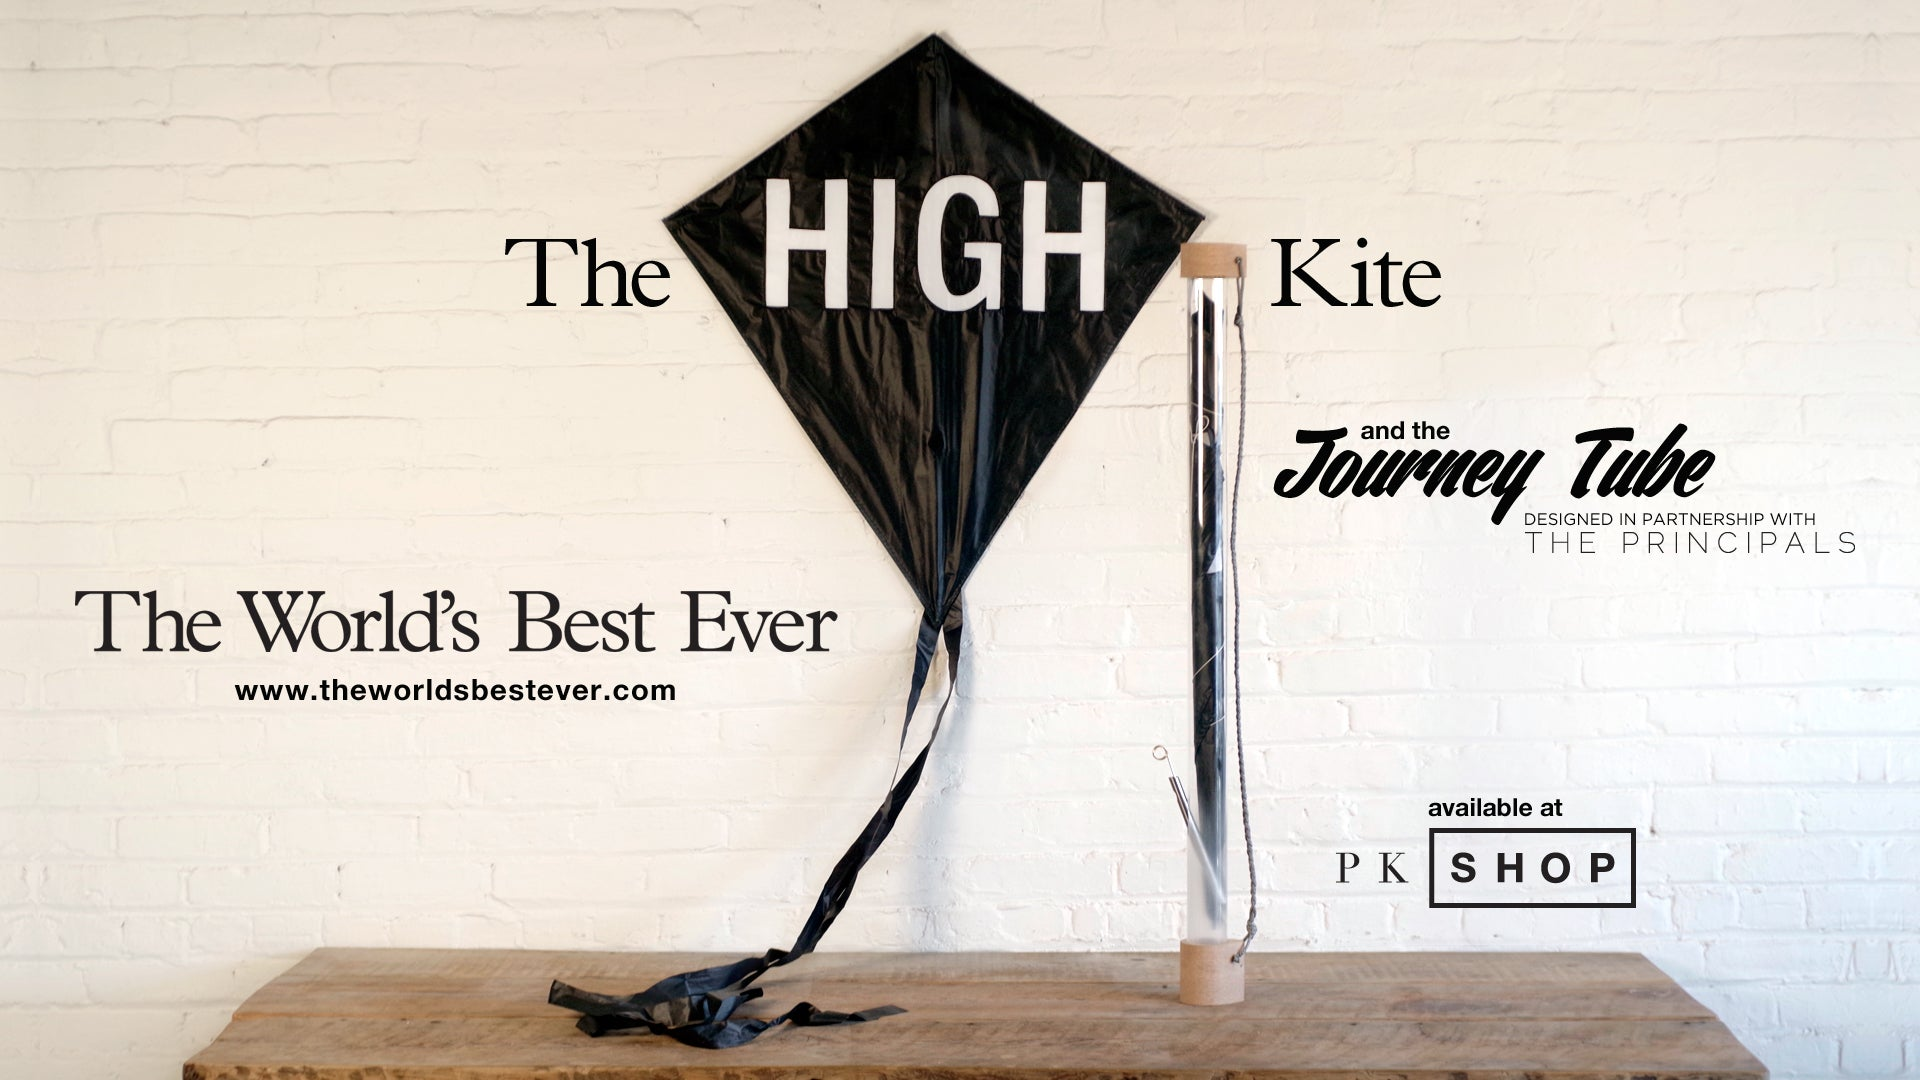 Let Your Stoner Flag Fly with the High Kite